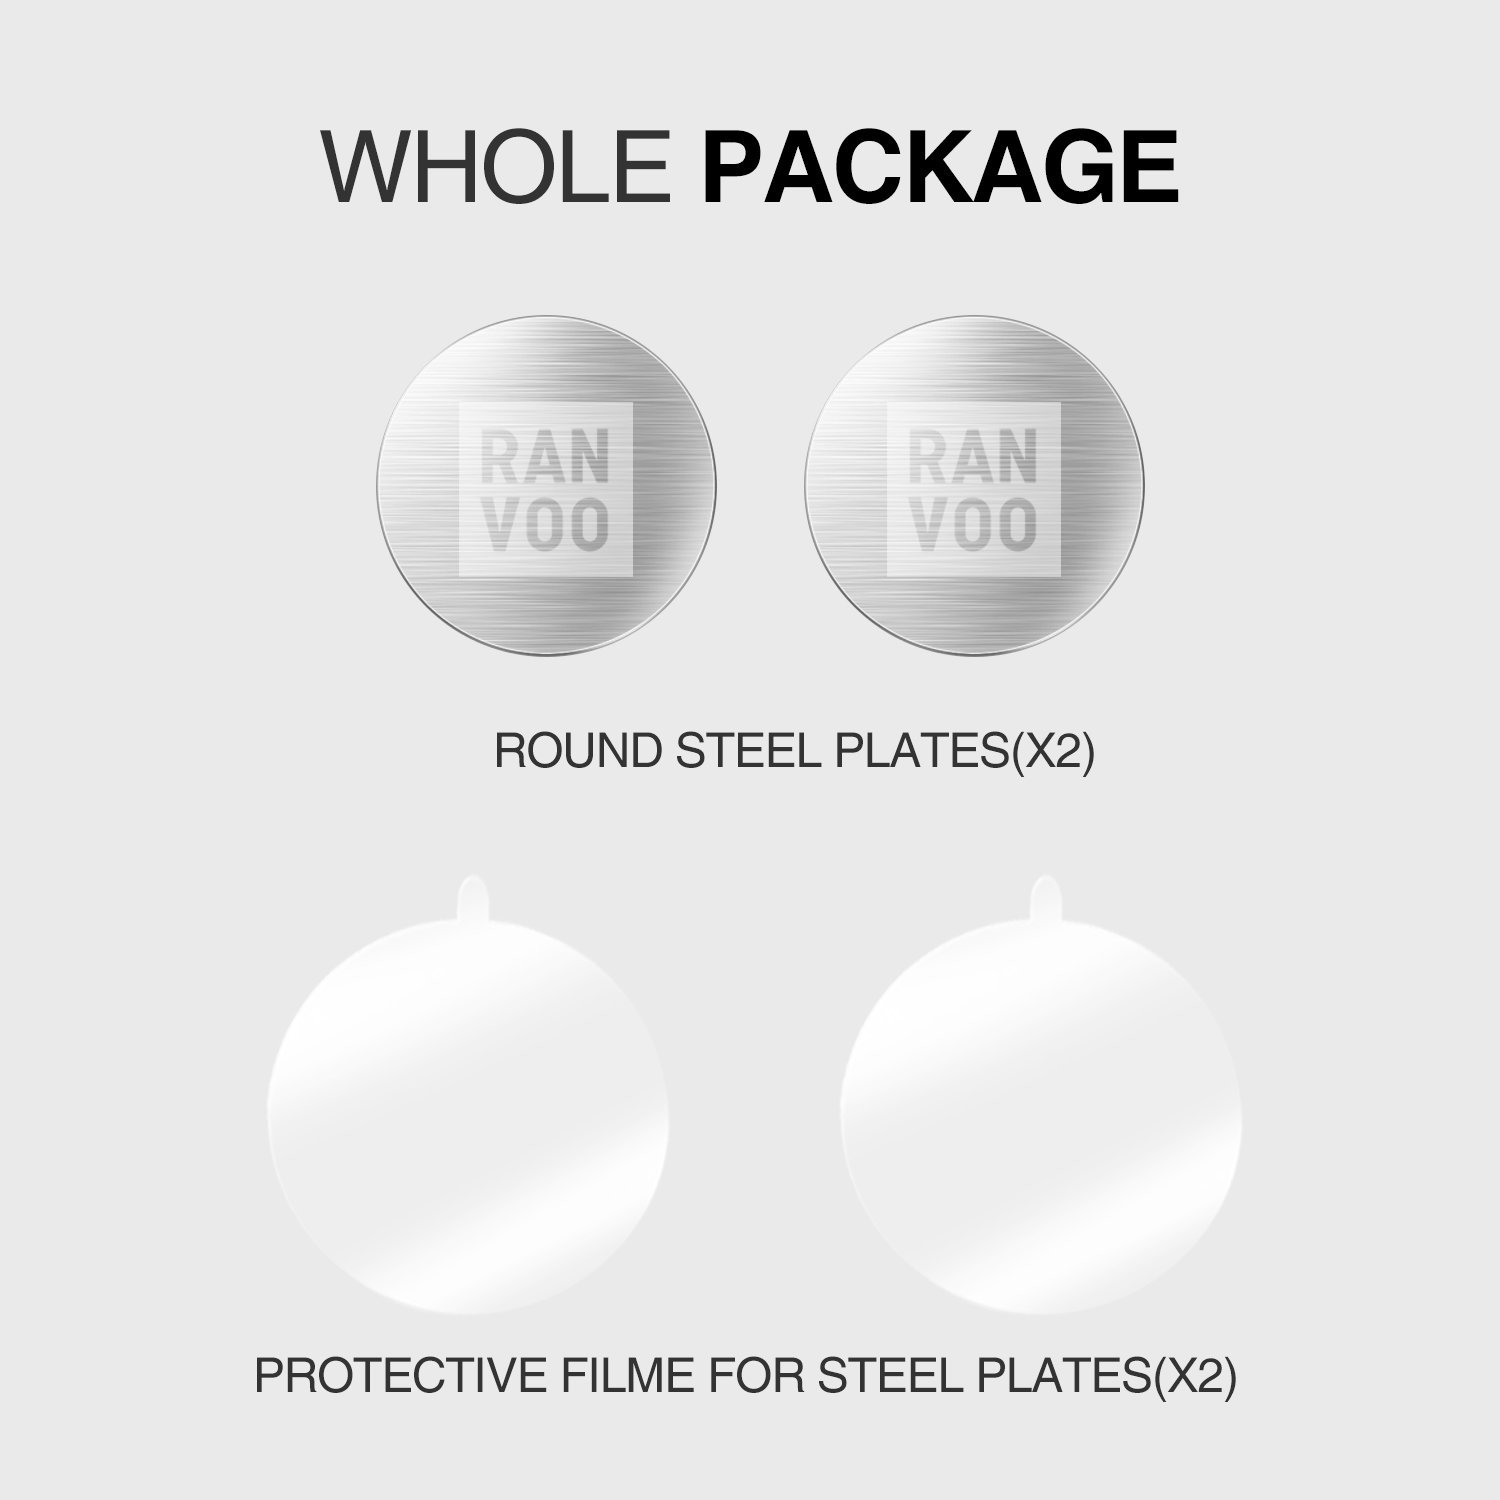 Relplacement Mount Metal Plate Kit, RANVOO Metal Plates for Magnetic Cradle-less Car Mount with 3M Adhesive - 2 Transparent Sticker & 2 Round Metal Plates (Compatible with RANVOO Magnetic Car Mounts)